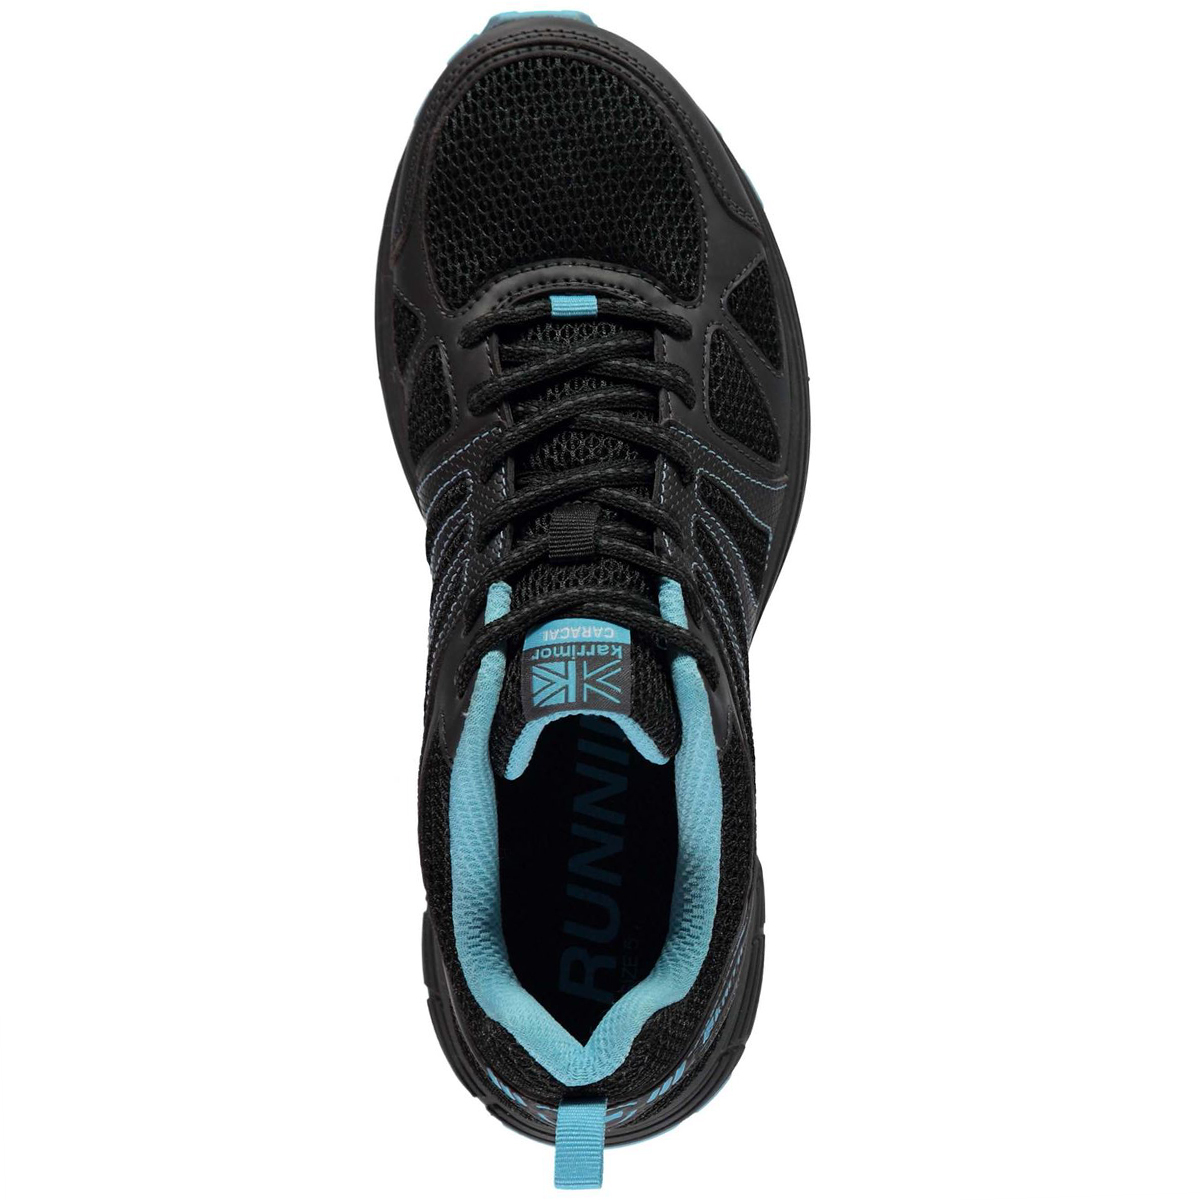 Caracal Trail Running Shoes